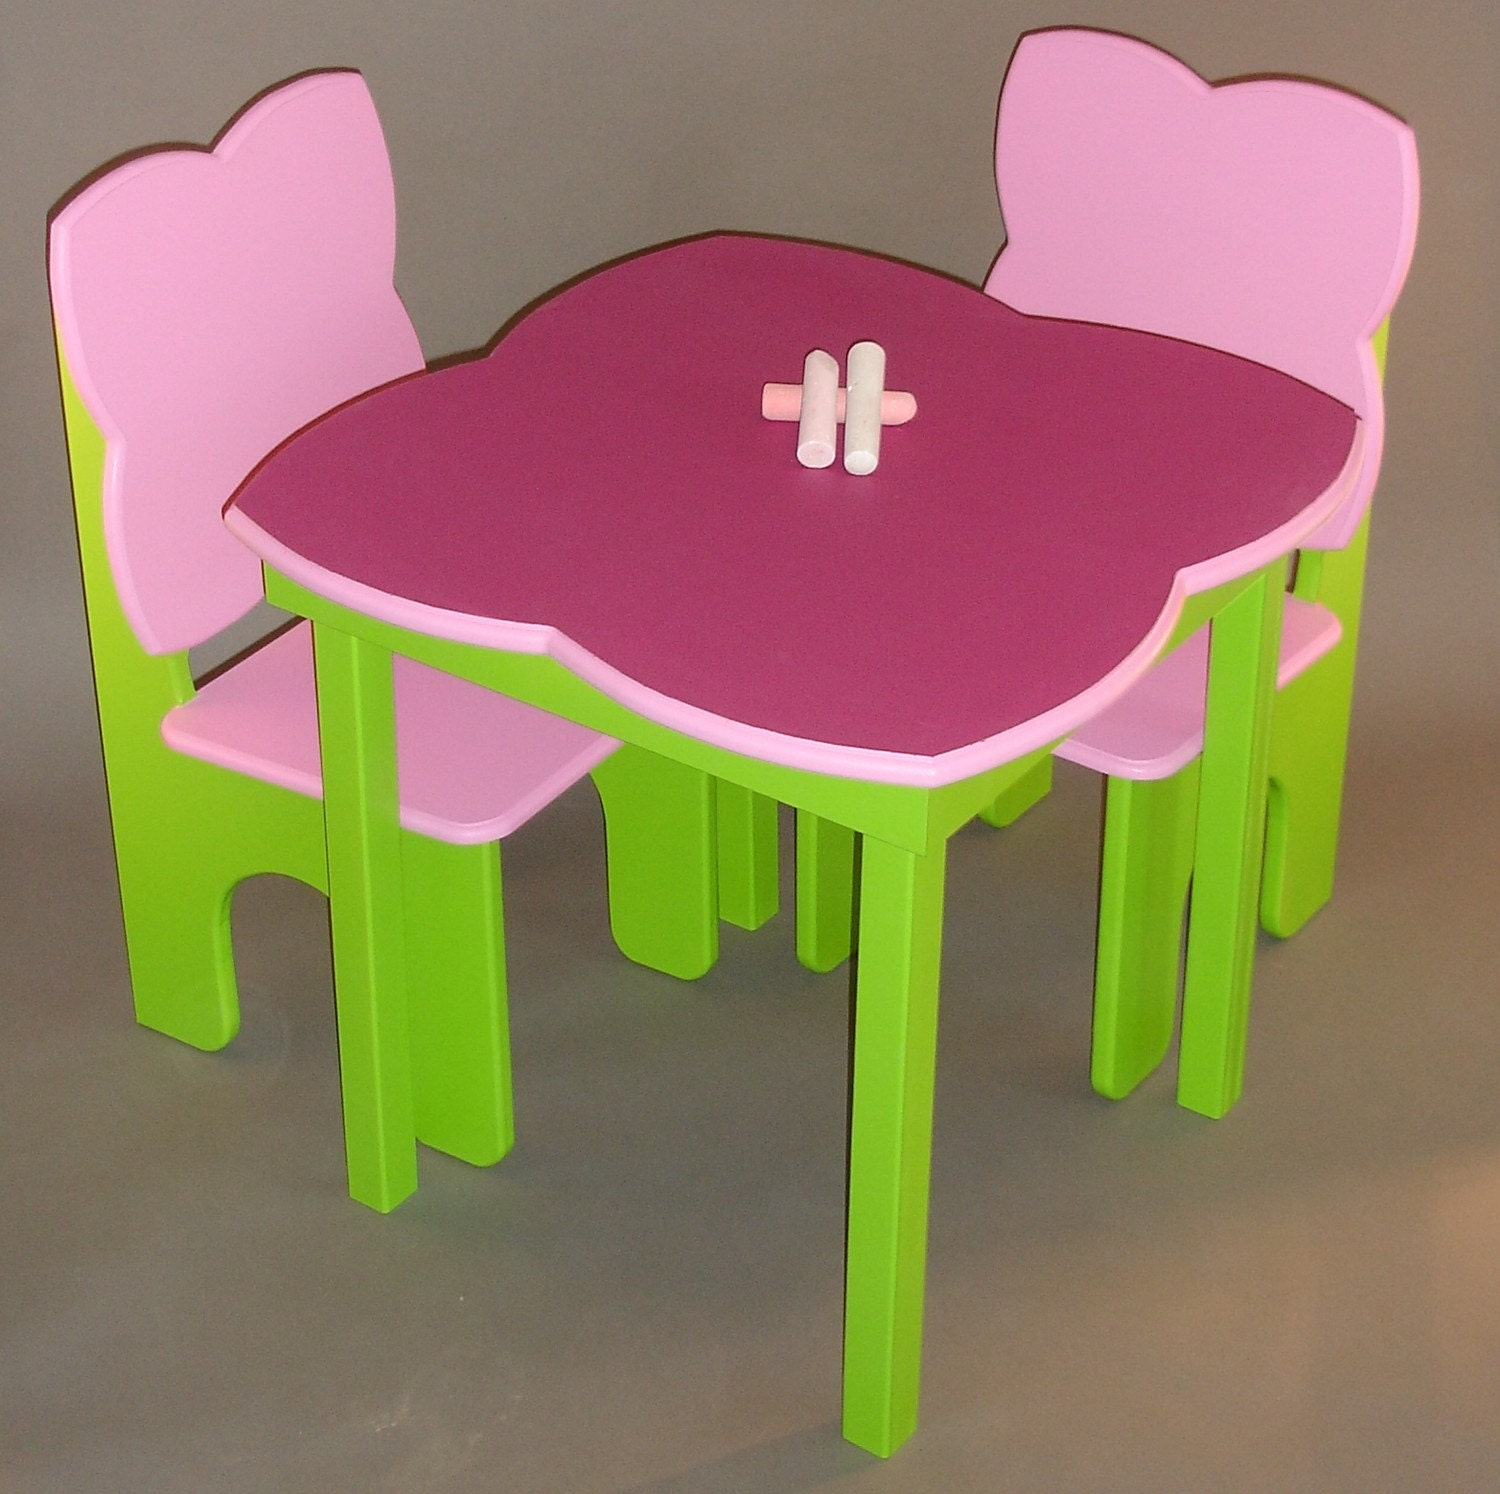 Childrens Table and Chairs with Flower Chalkboard Top